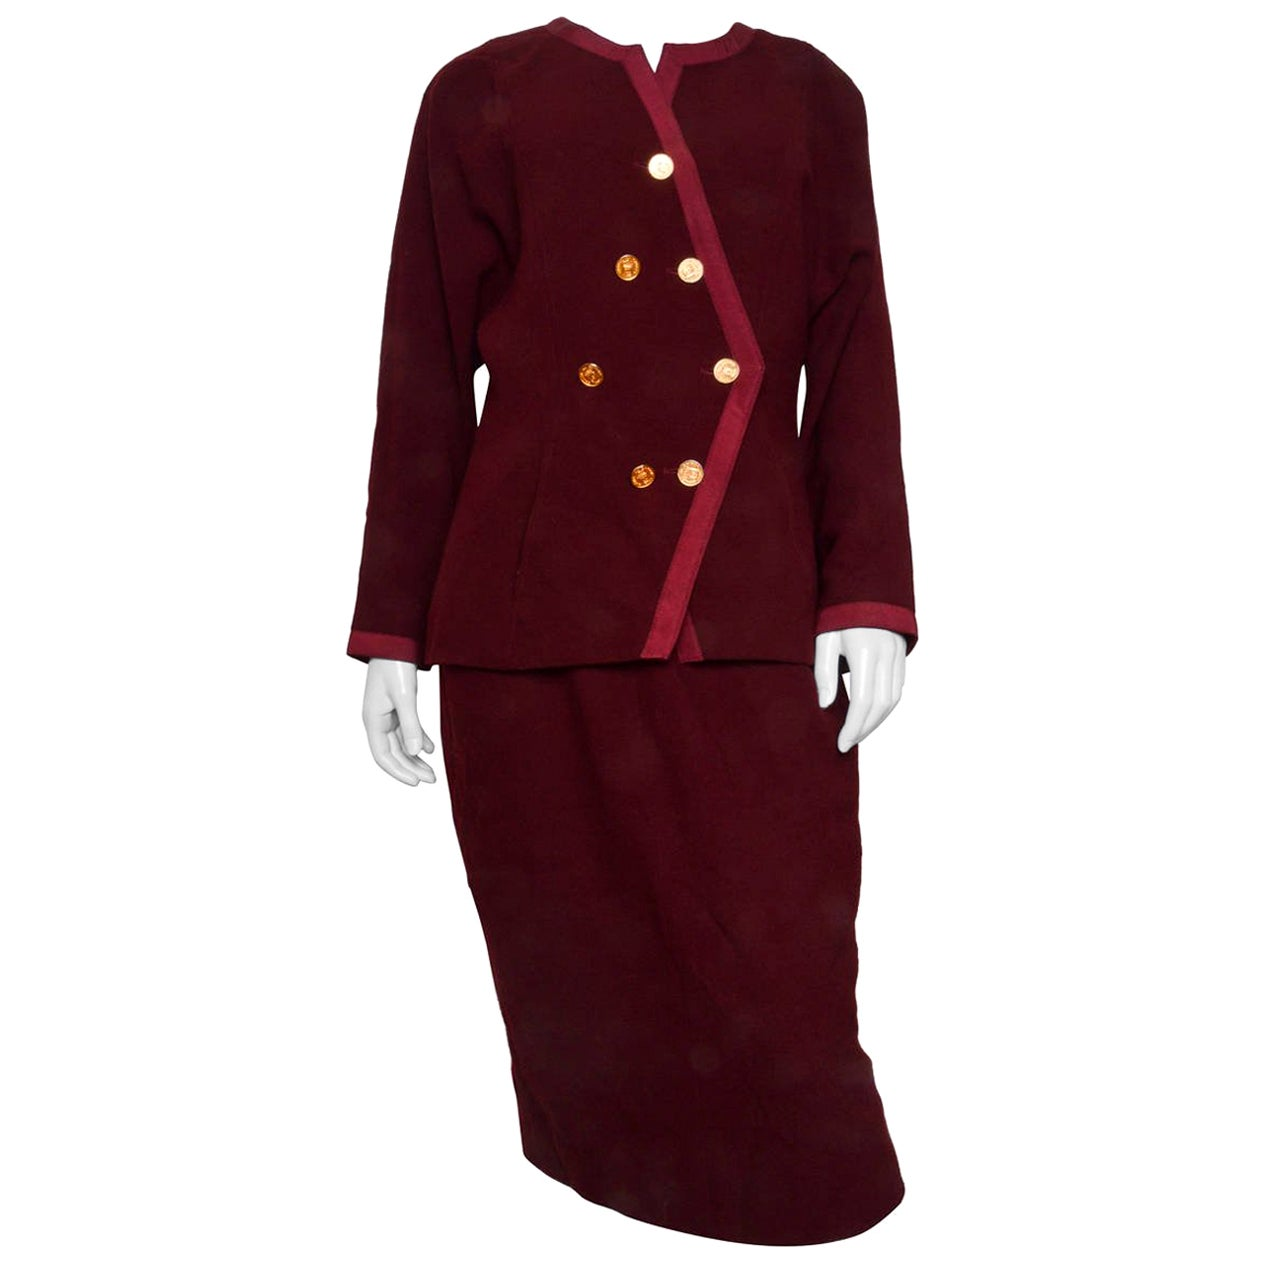 Chanel Burgundy Wool Knit Suit